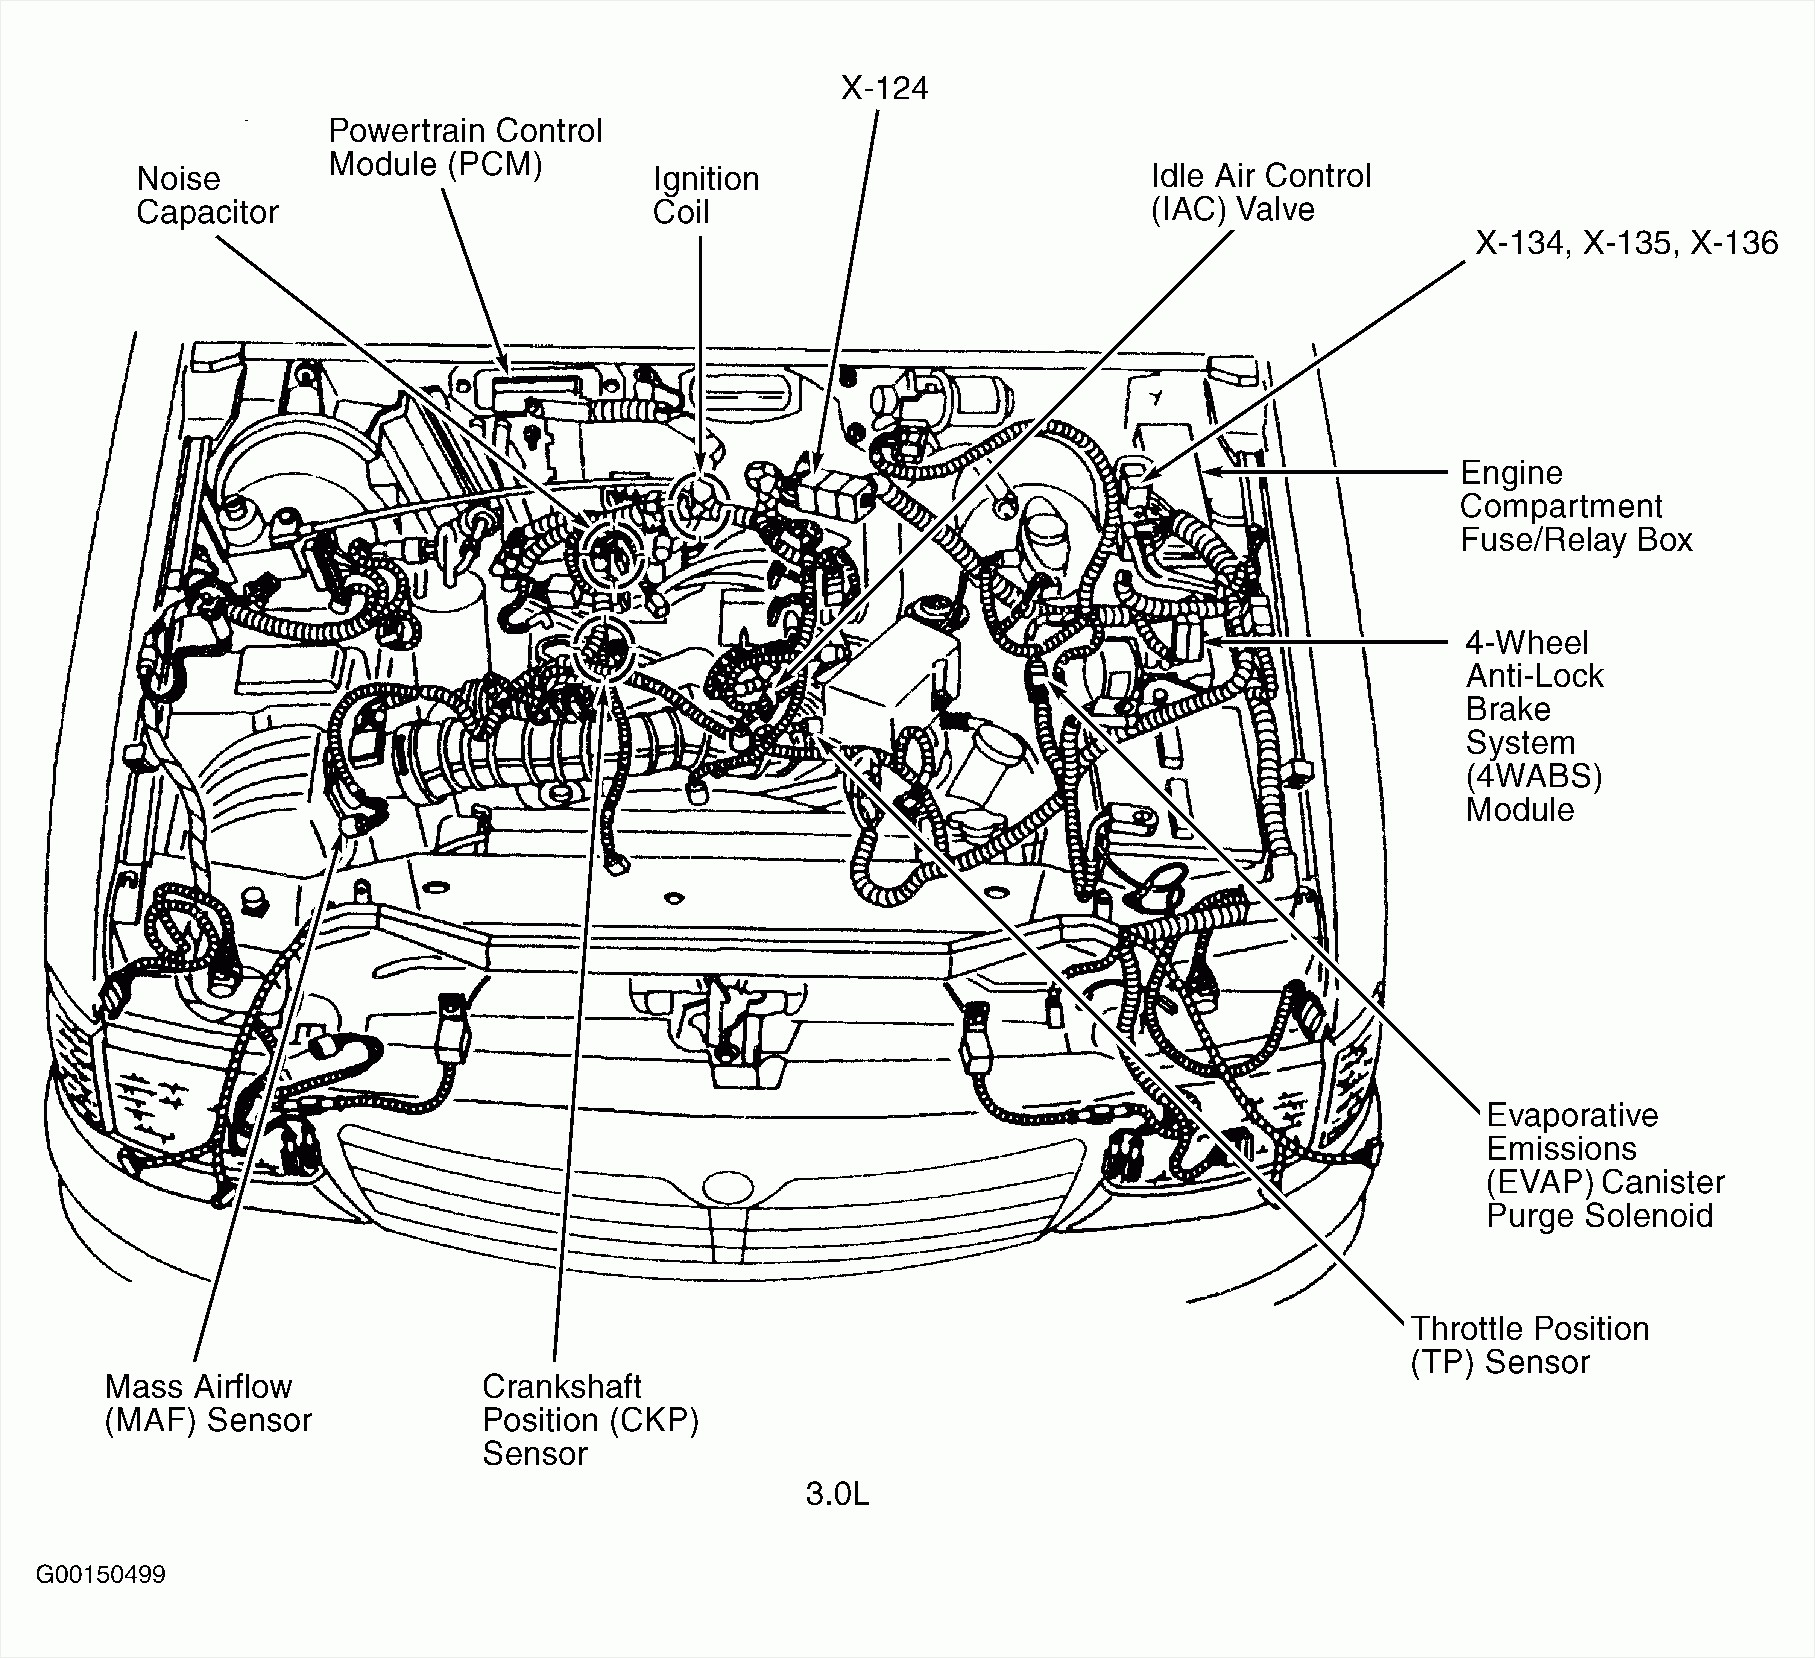 mini cooper engine diagrams wiring diagram on the net mini cooper fan relay location mini cooper engine diagrams coolant